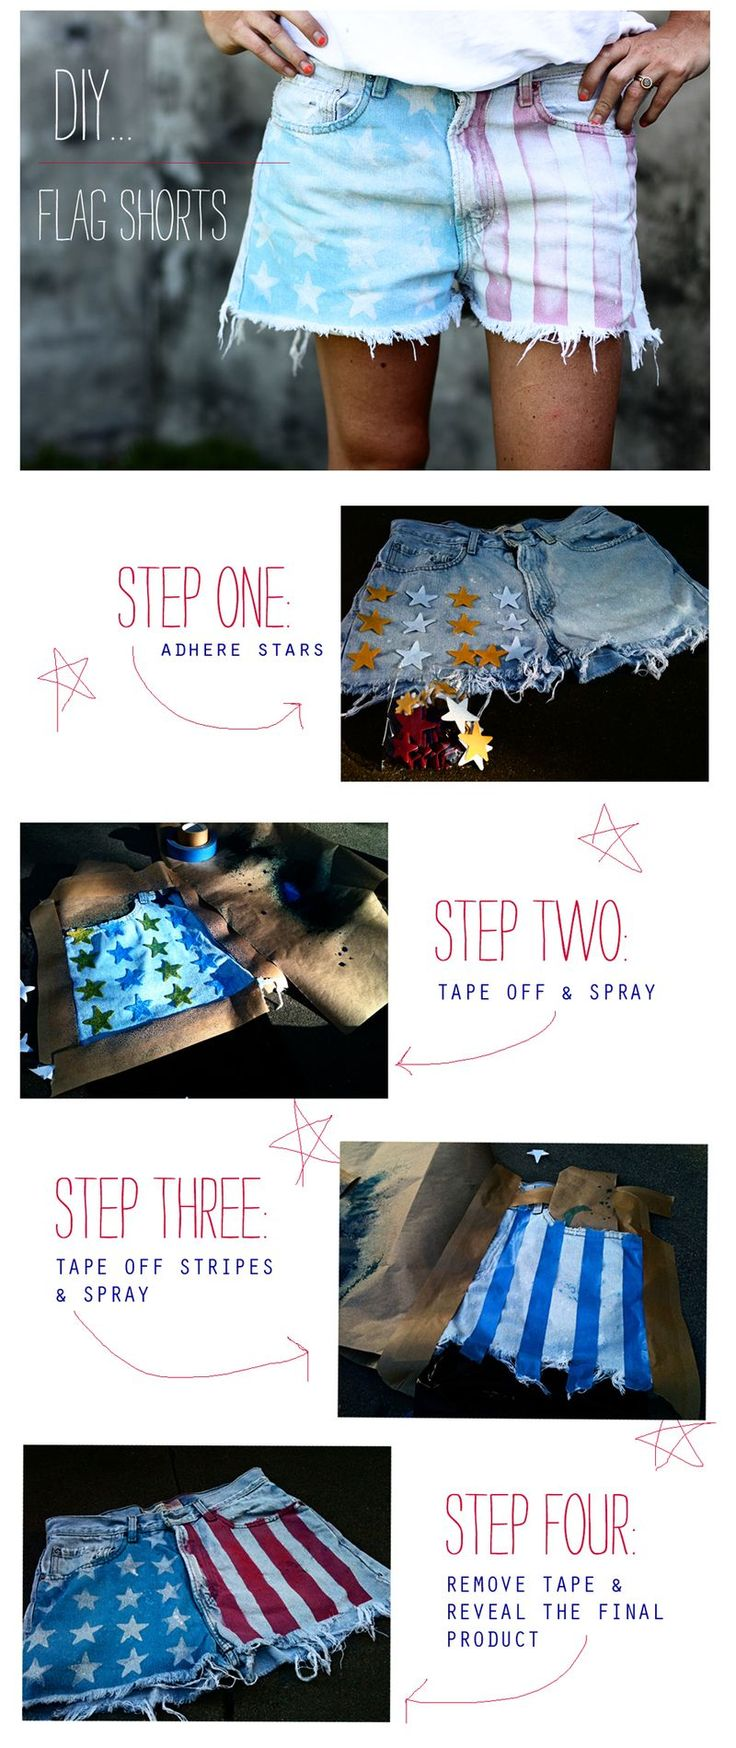 doing this for the summerDiy Flags, Ideas, American Flags Shorts Diy, Crafty, Clothing, Fourth Of July, 4Th Of July, Jeans Shorts, Crafts